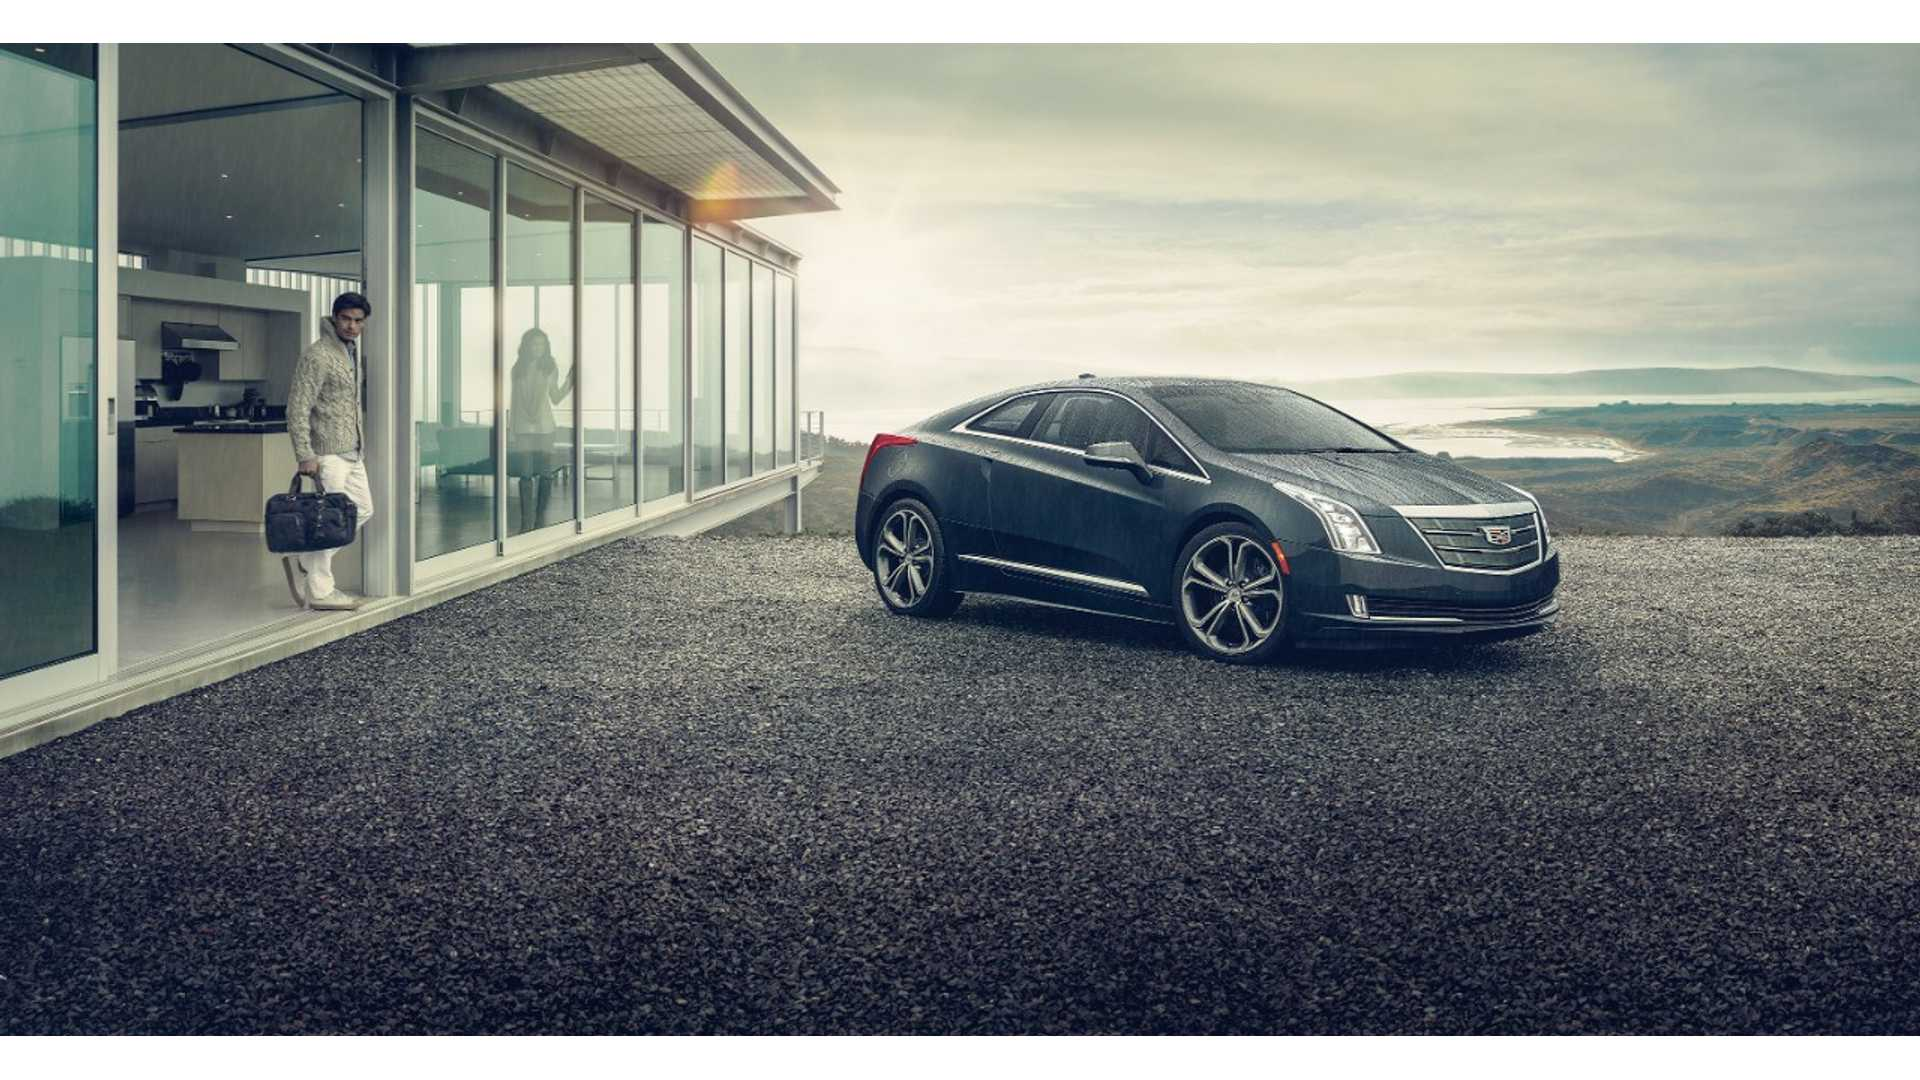 2016-cadillac-elr-sport-emerges-with-reduced-electric-range (1).jpg